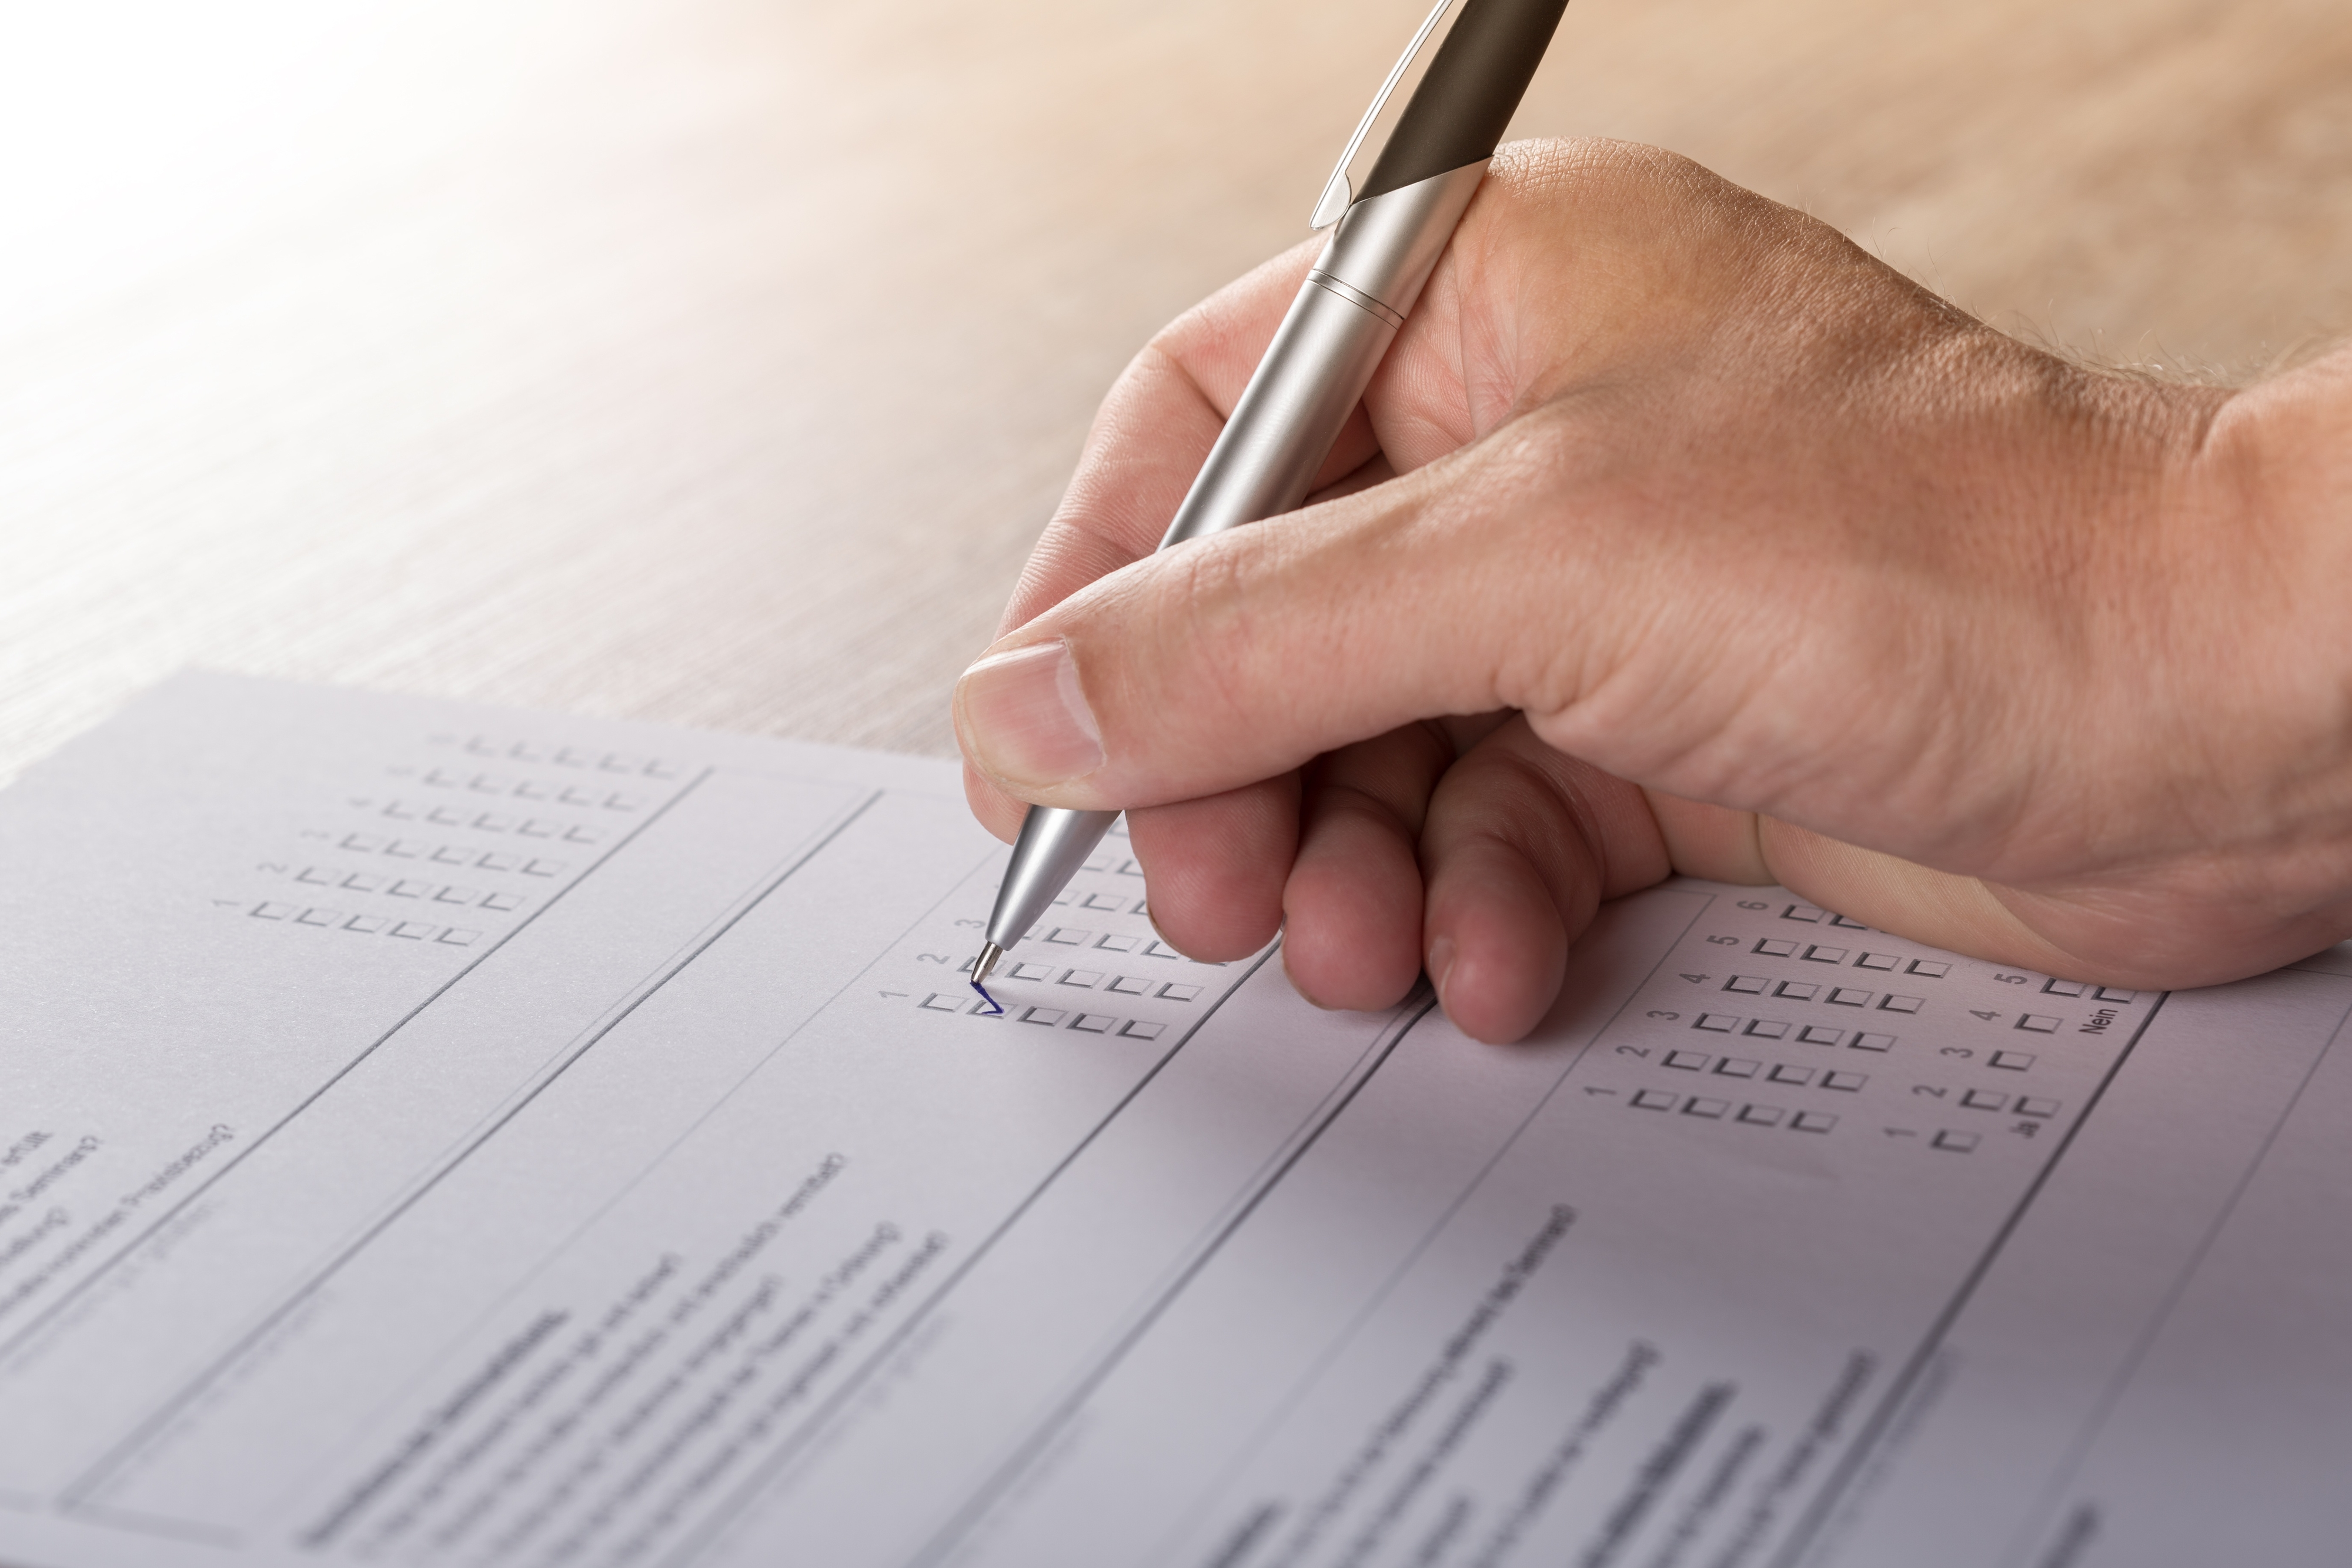 photo of a hand filling out a questionnaire